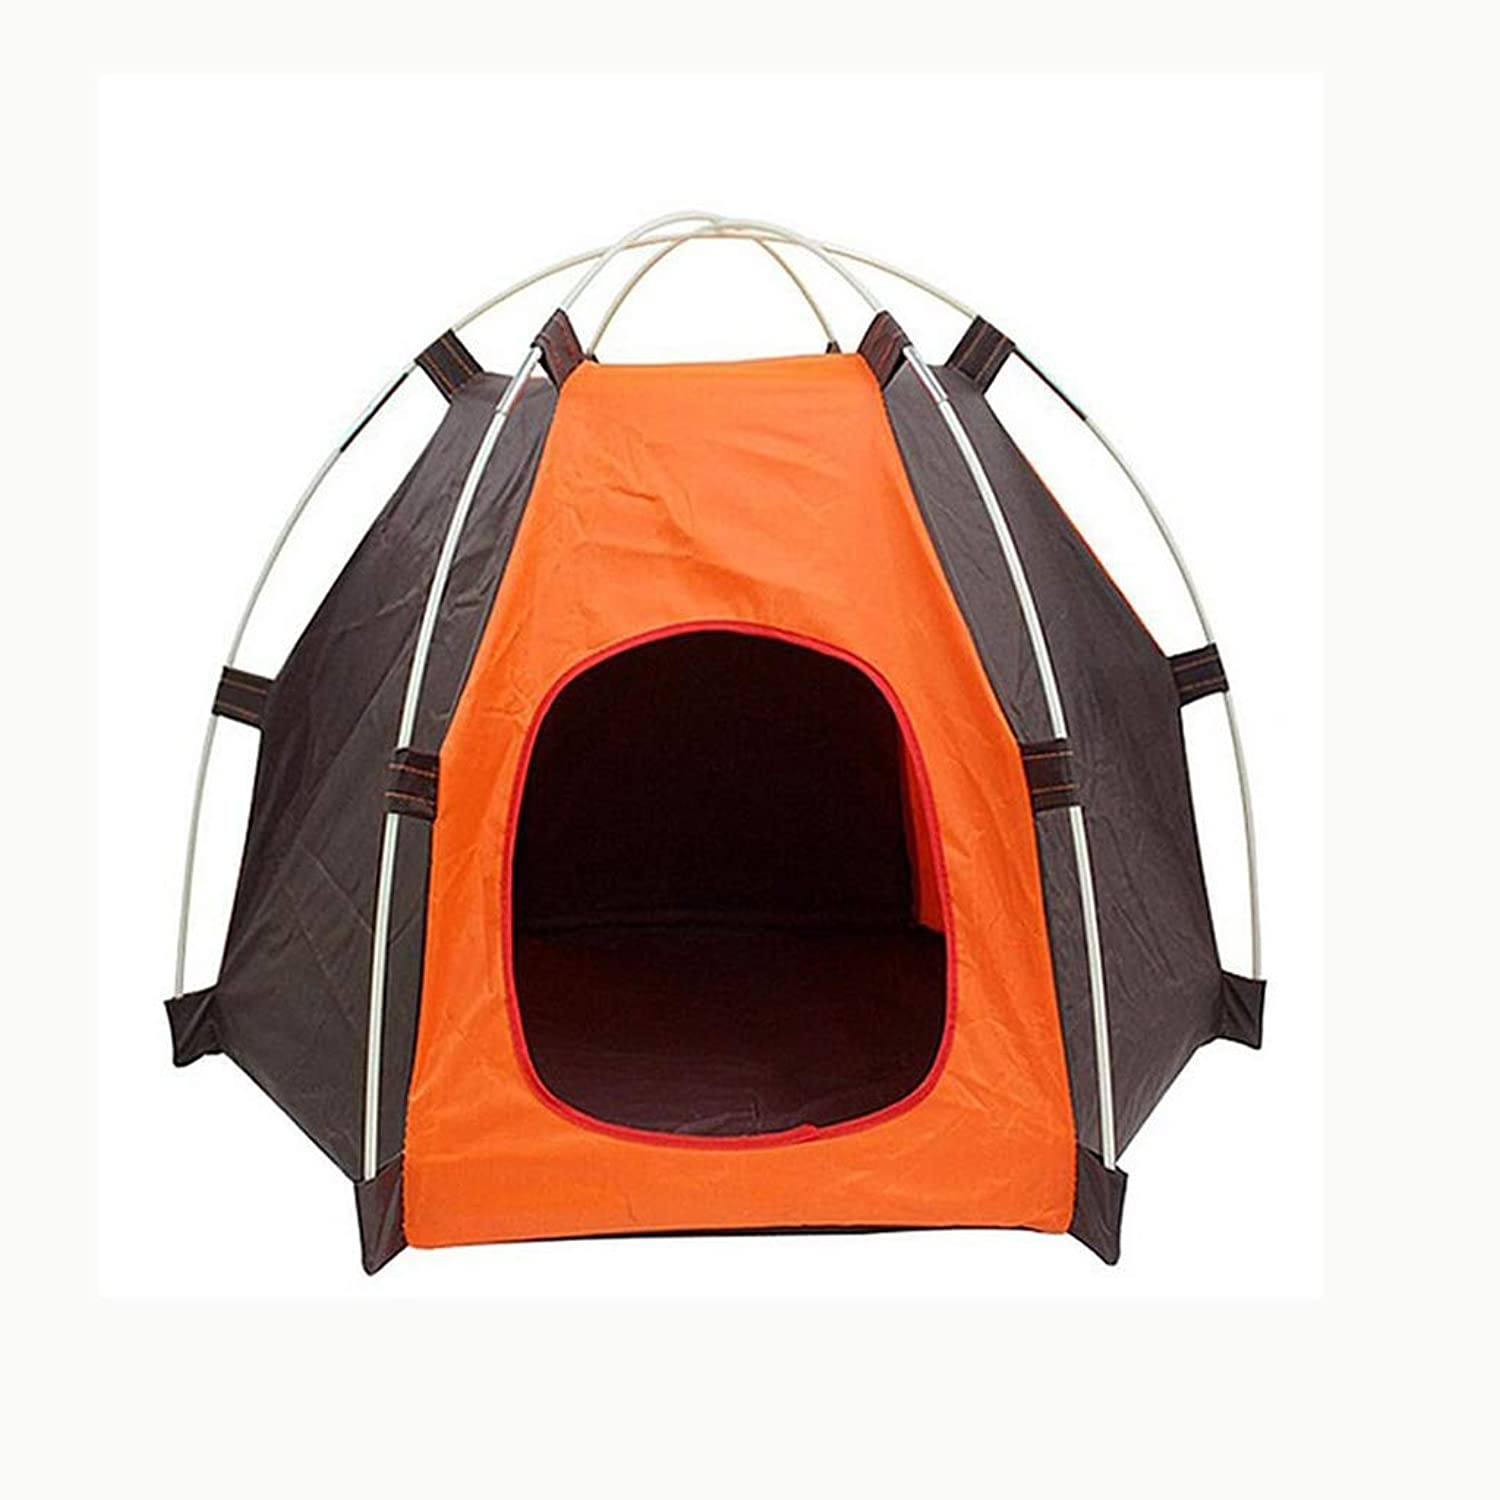 Folding Kennel Oxford Waterproof Tent Dog House Umbrella Outdoor Camping Home Travel House Pet Bird Nest Shelter Tent